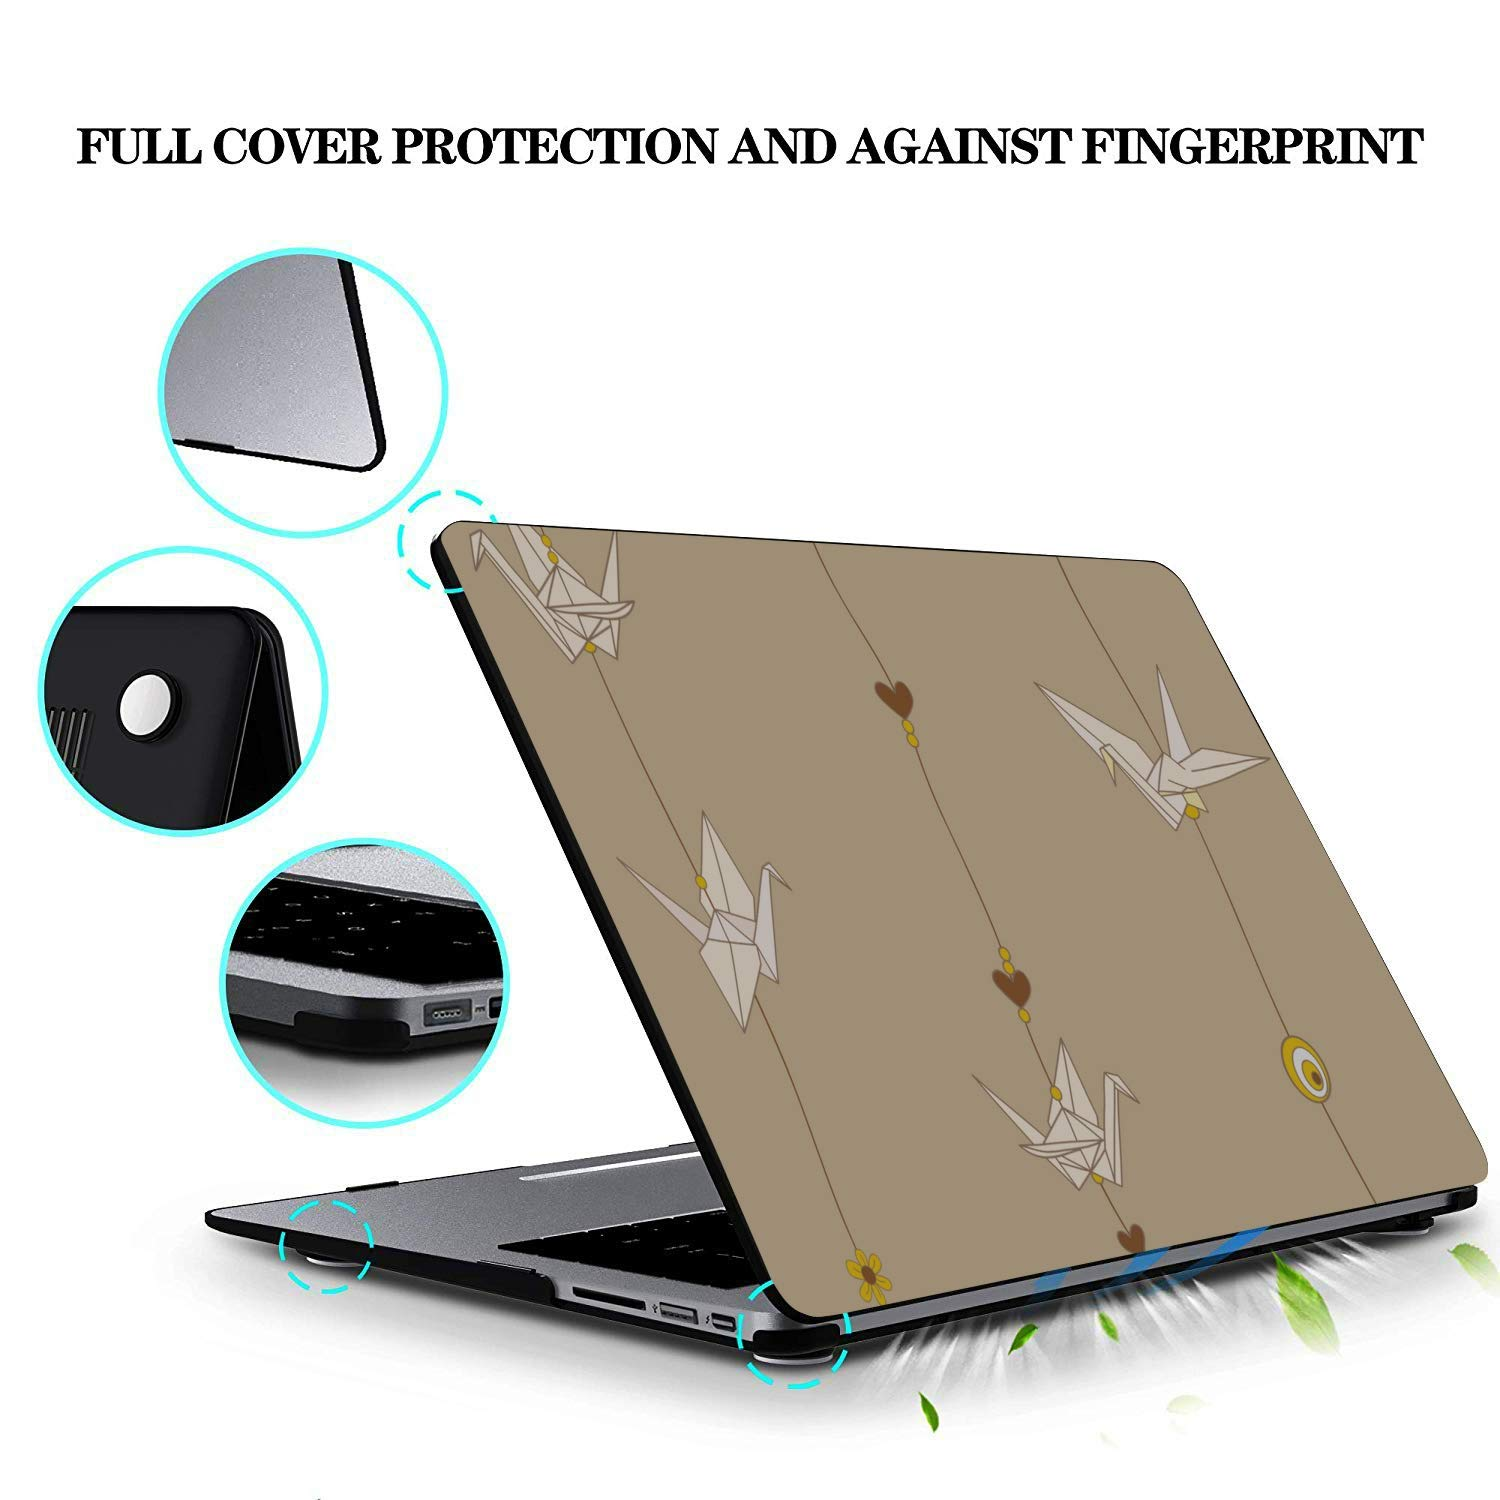 MacBook Pro 15 Cover Wish Hand Made Paper Crane Gift Toy Plastic Hard Shell Compatible Mac Air 11 Pro 13 15 MacBook Pro 2016 Case Protection for MacBook 2016-2019 Version